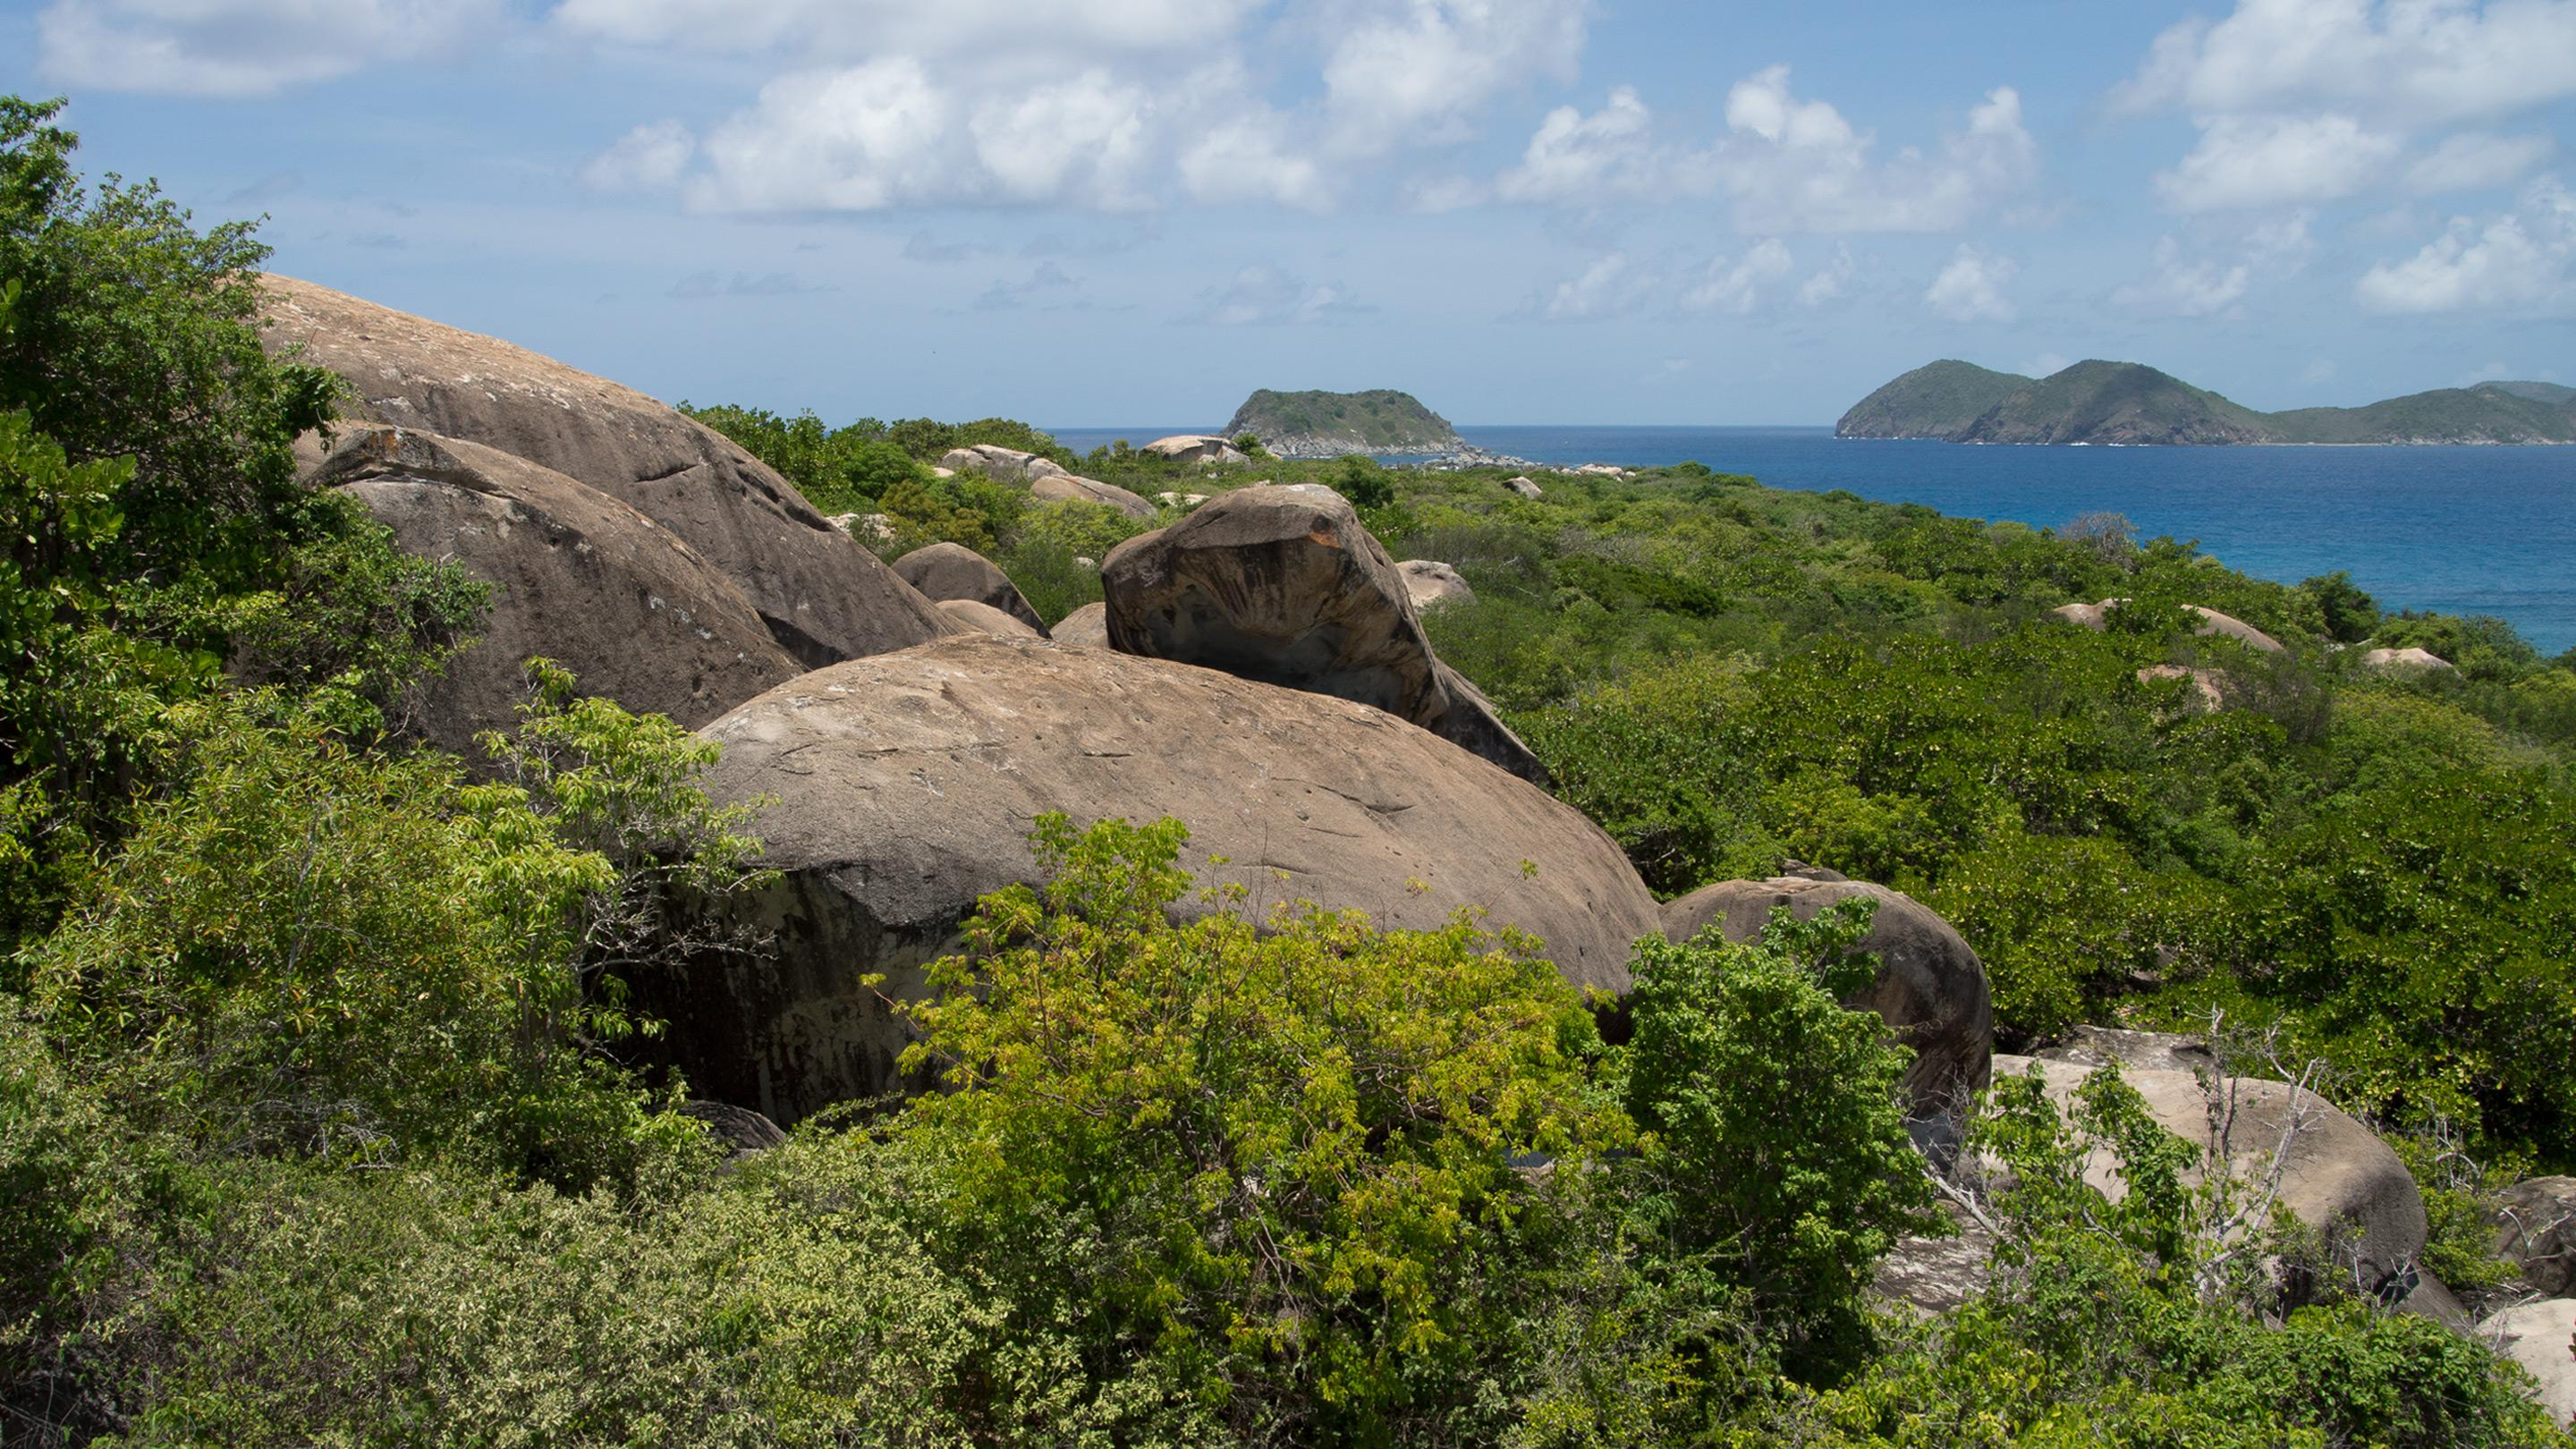 Tropical Important Plant Areas in the British Virgin Islands (BVI TIPAs)